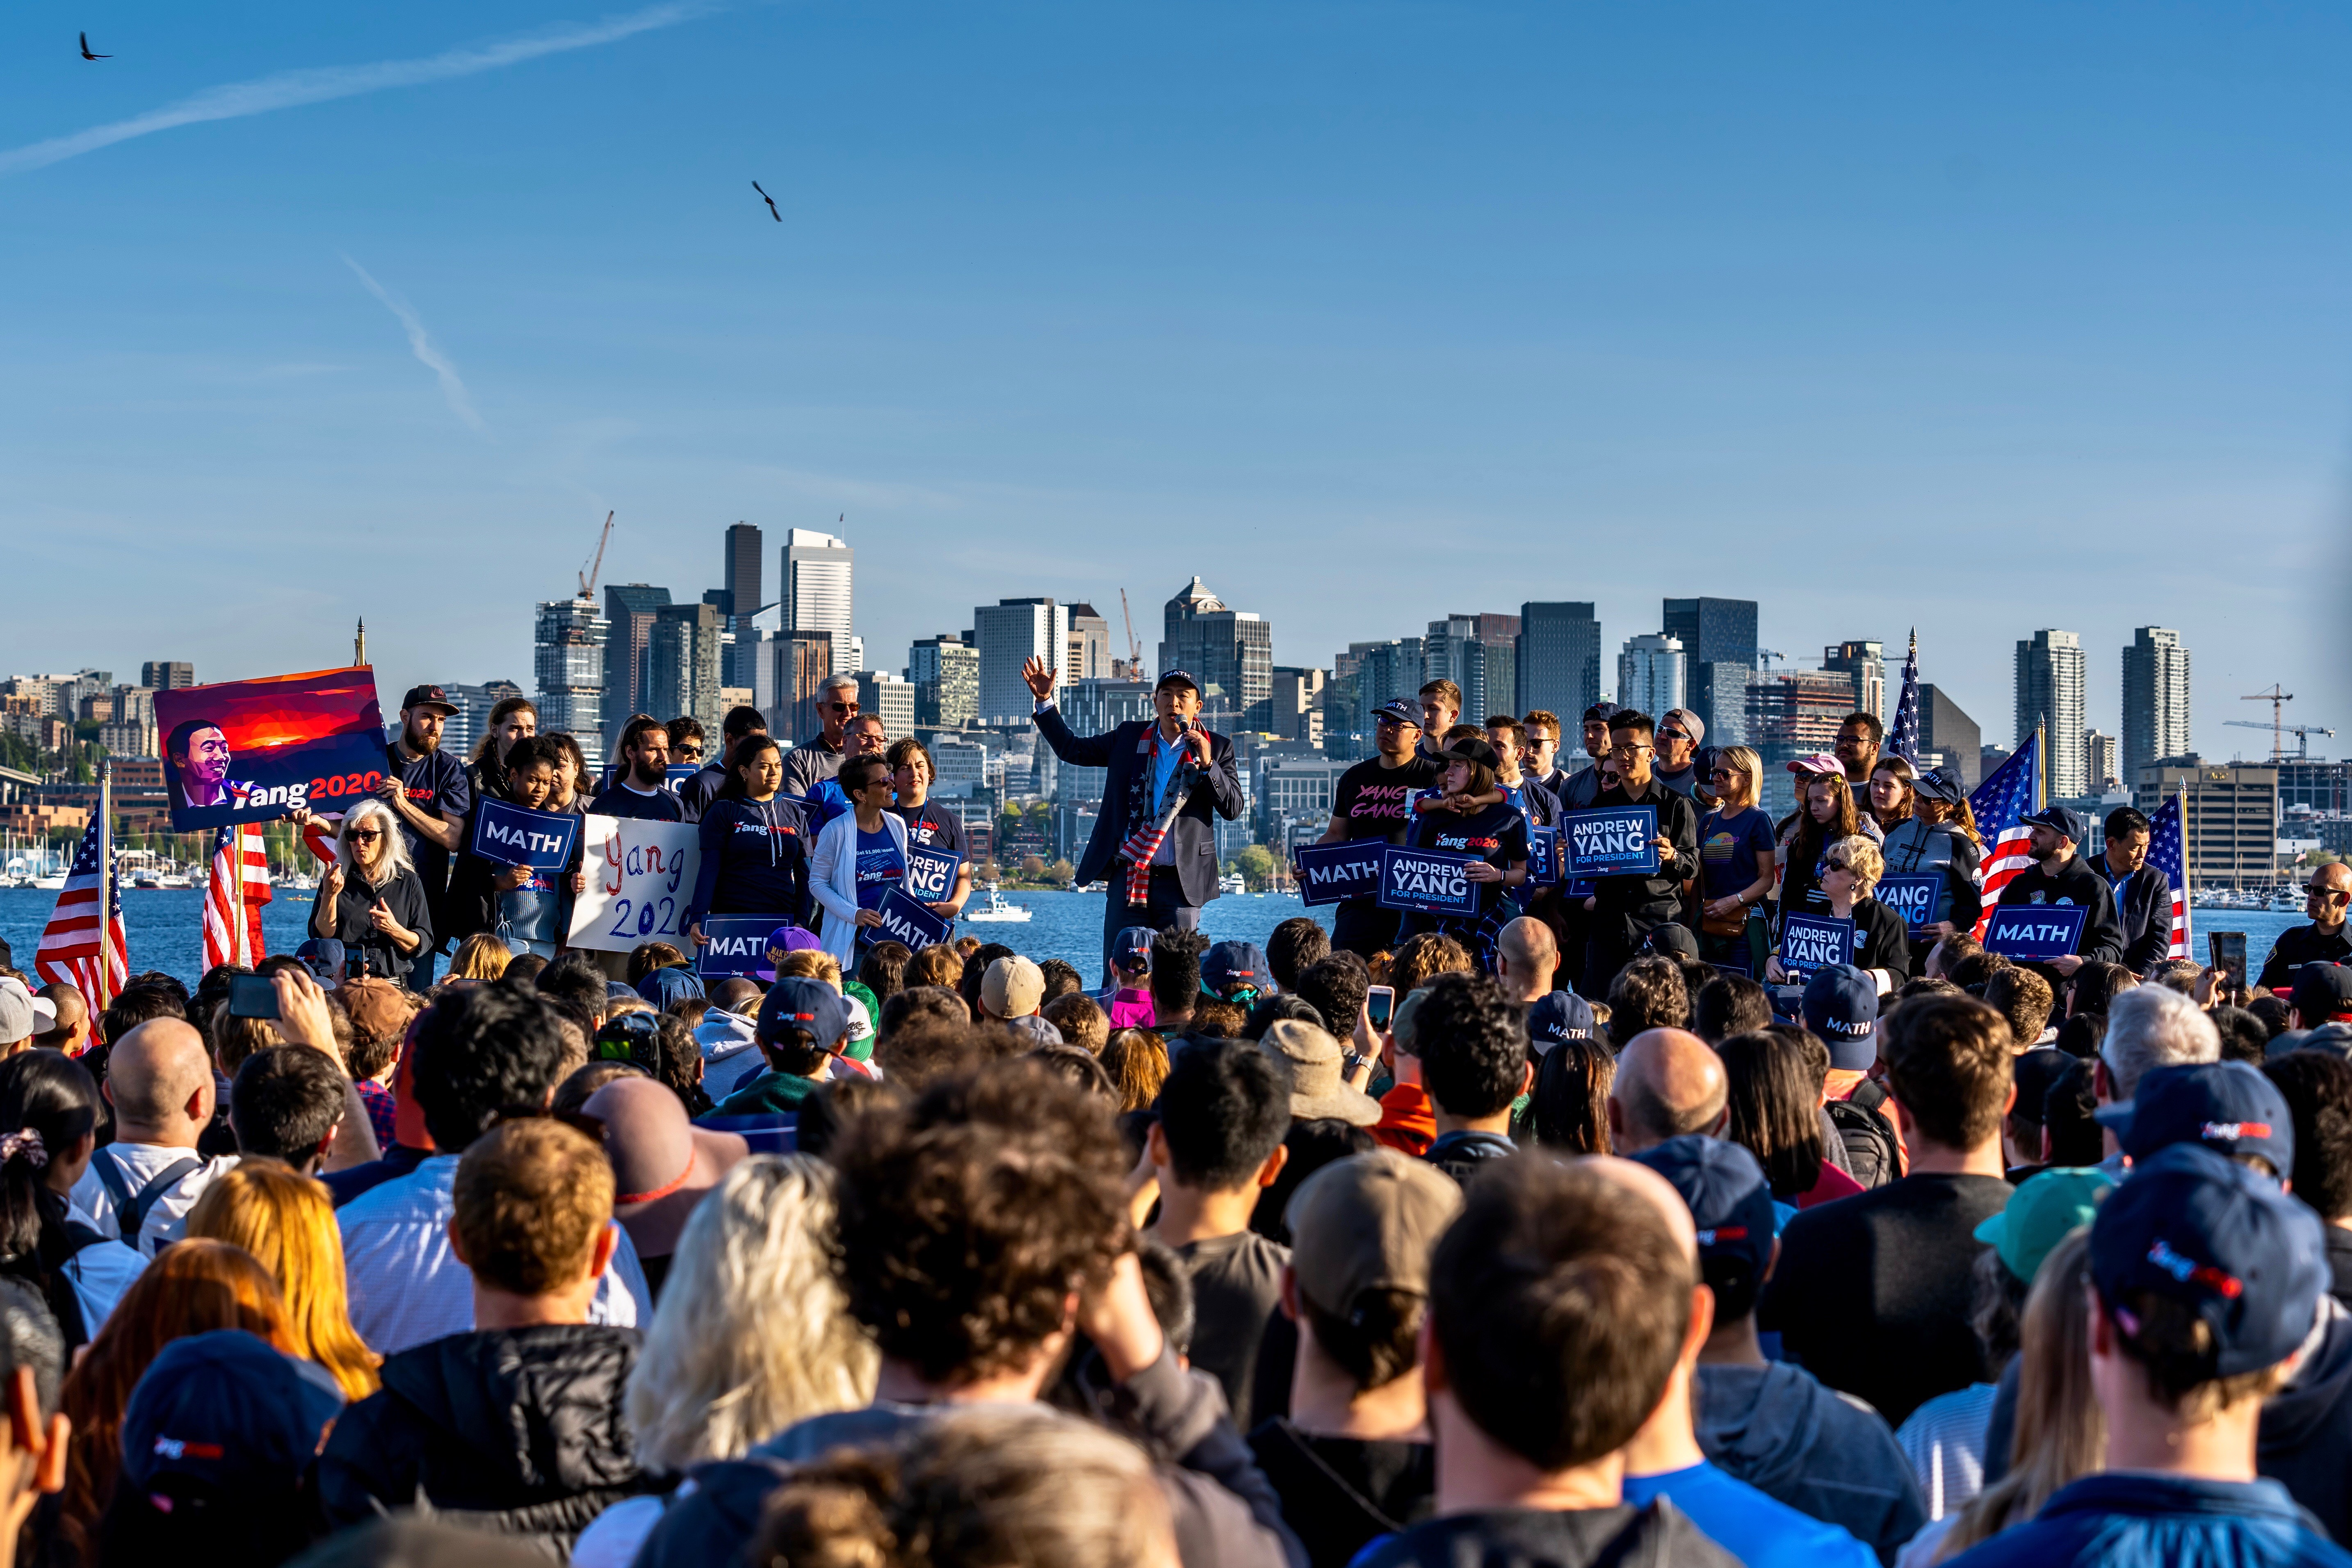 Andrew Yang, with Seattle in the background, delivers a speech to supporters